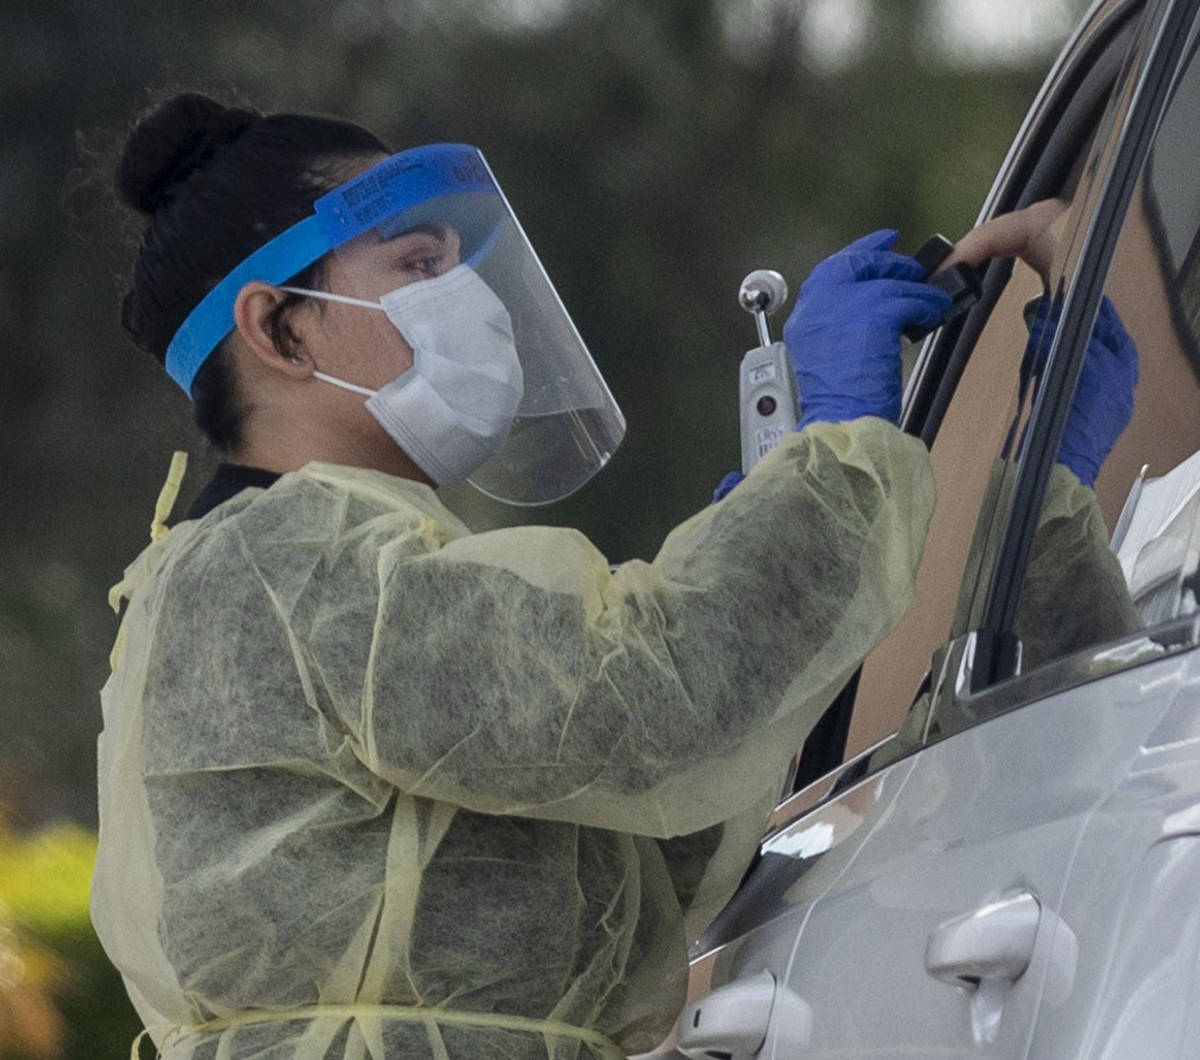 A UNLV medicine medical professional conducts a curbside test on a patient experiencing coronav ...